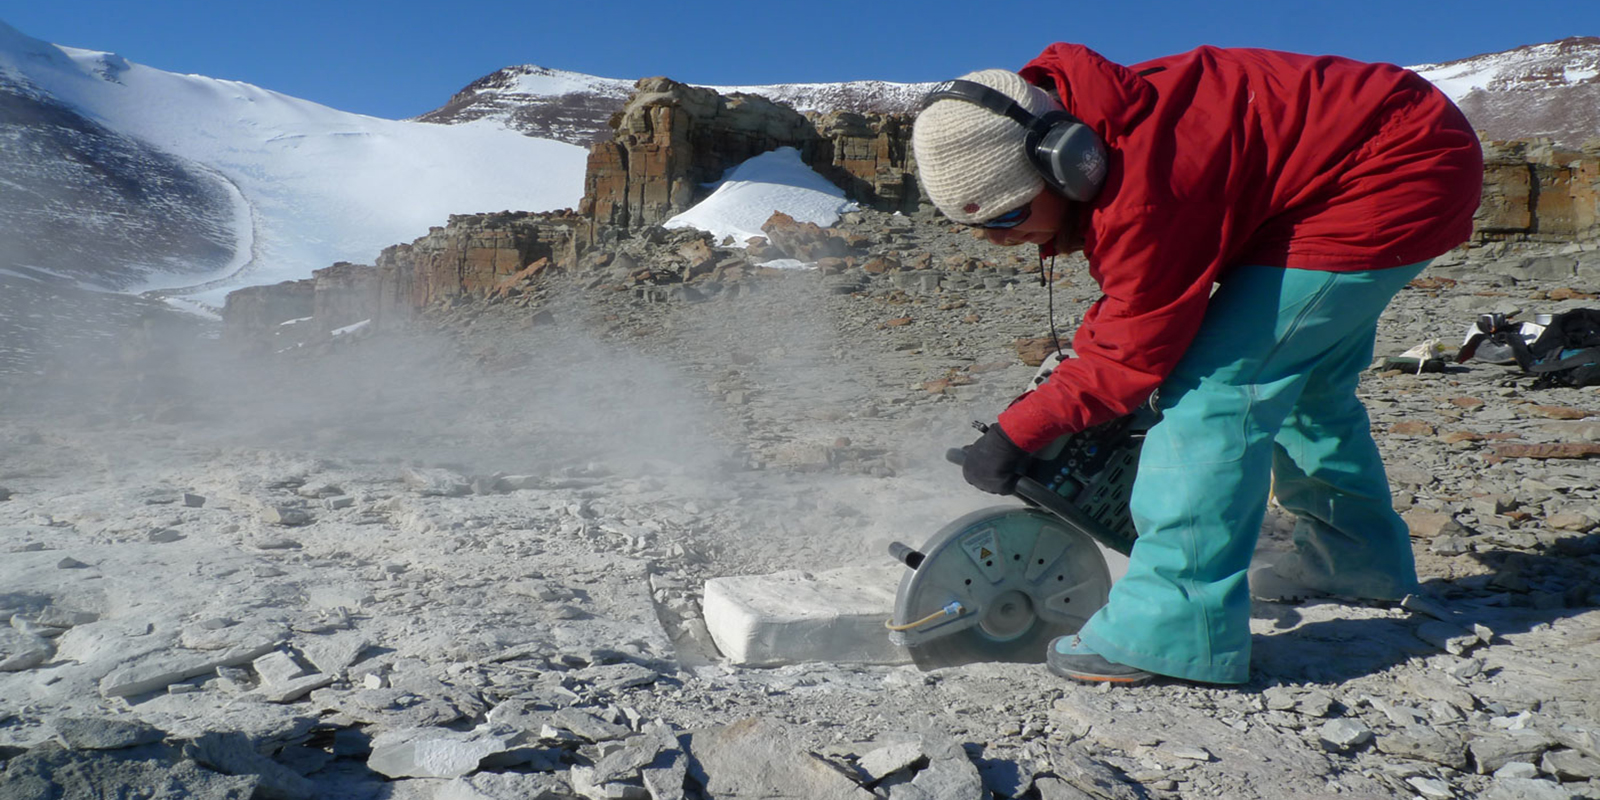 A young woman uses a rock saw to cut a pedestal around on fossil